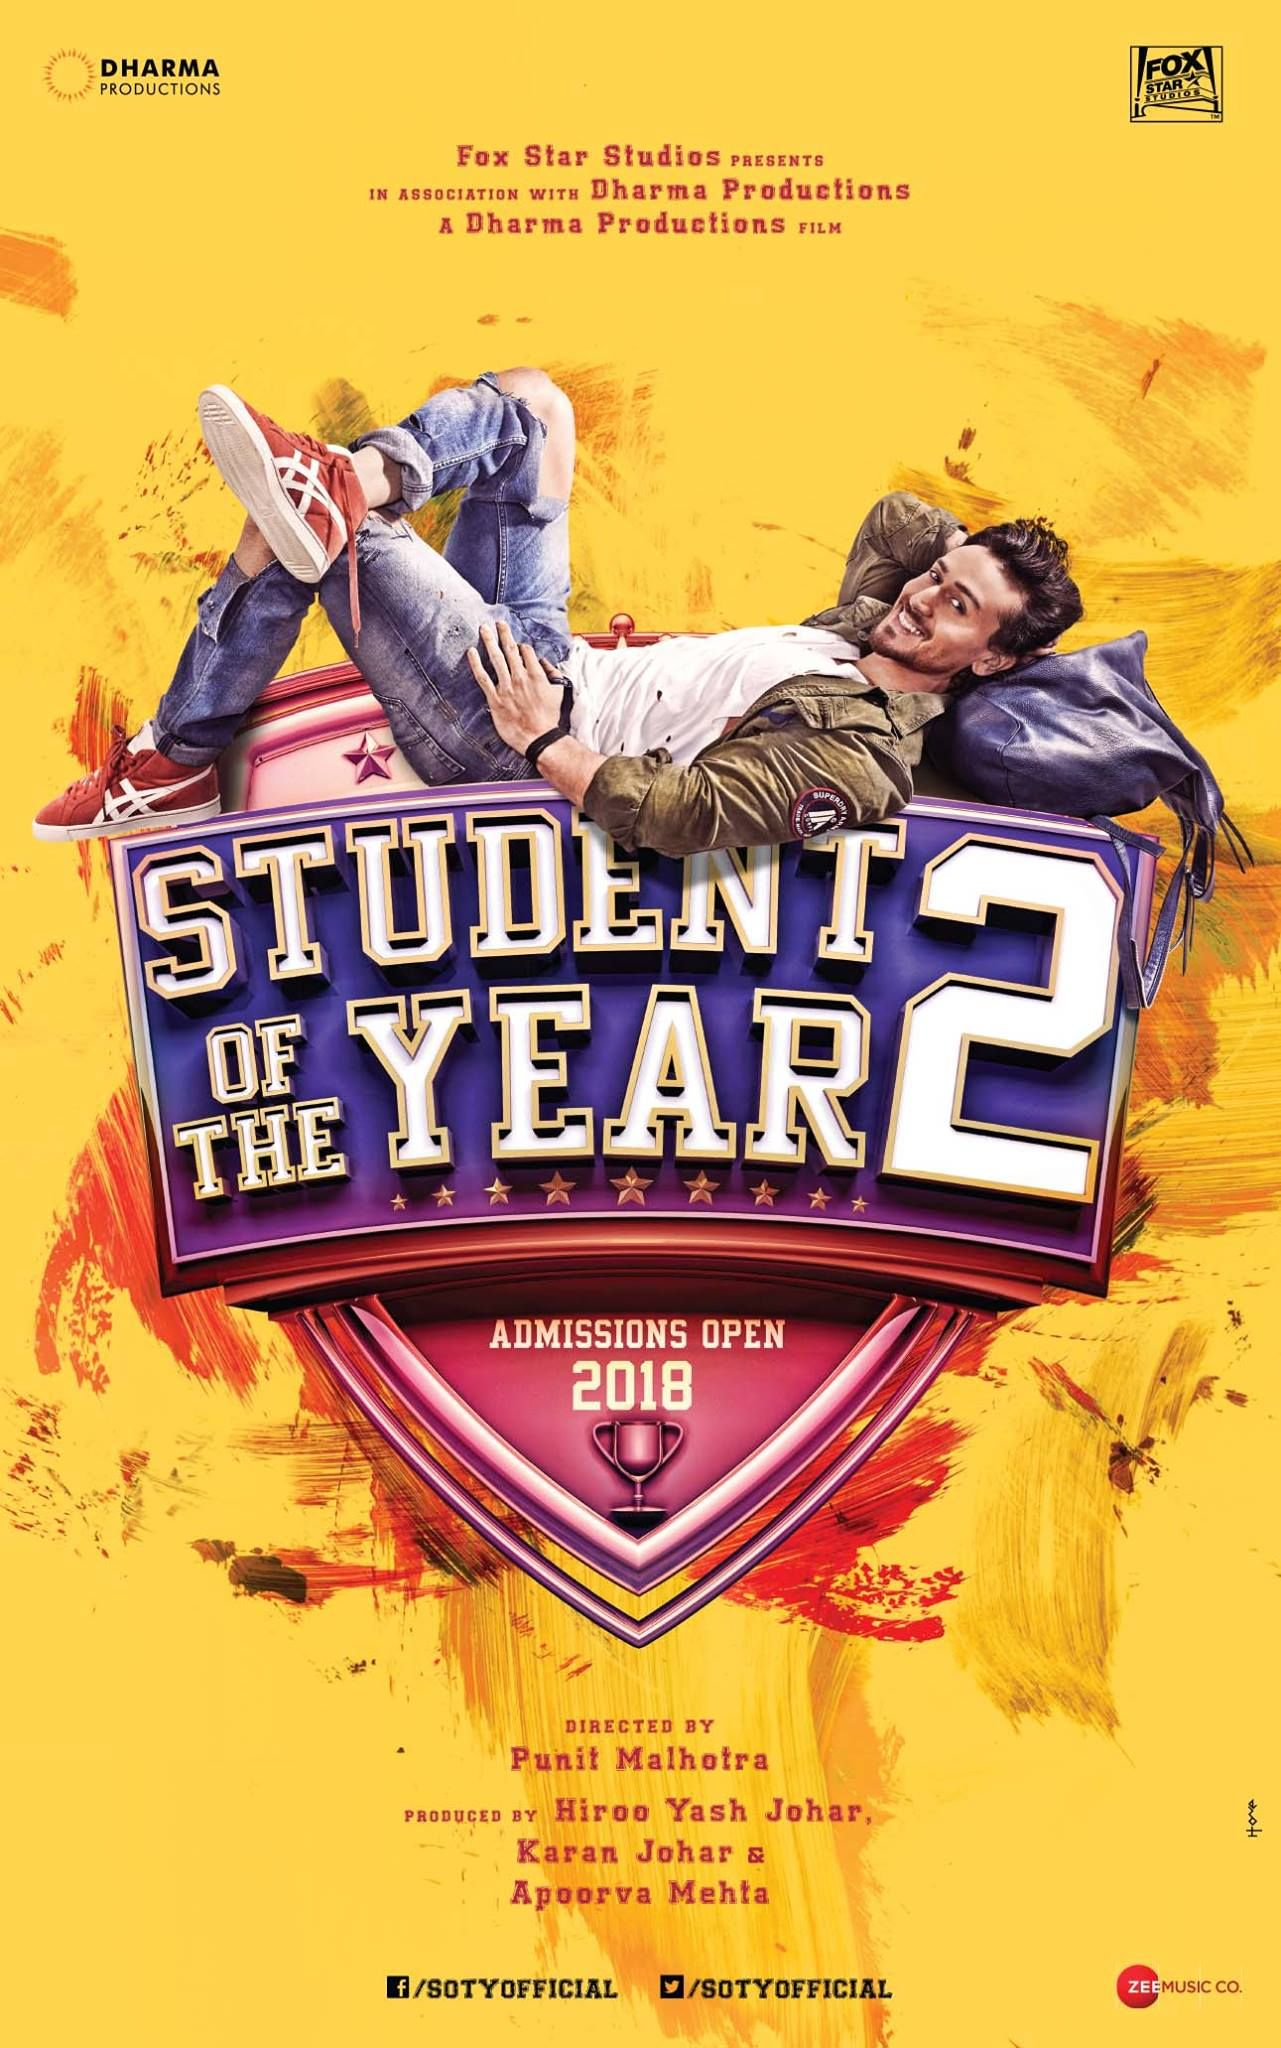 Student Of The Year 2 Official Poster Tiger Shroff Directed By Punit Malhotra Movie Releasing In 2 Student Of The Year Movies To Watch Online Full Movies